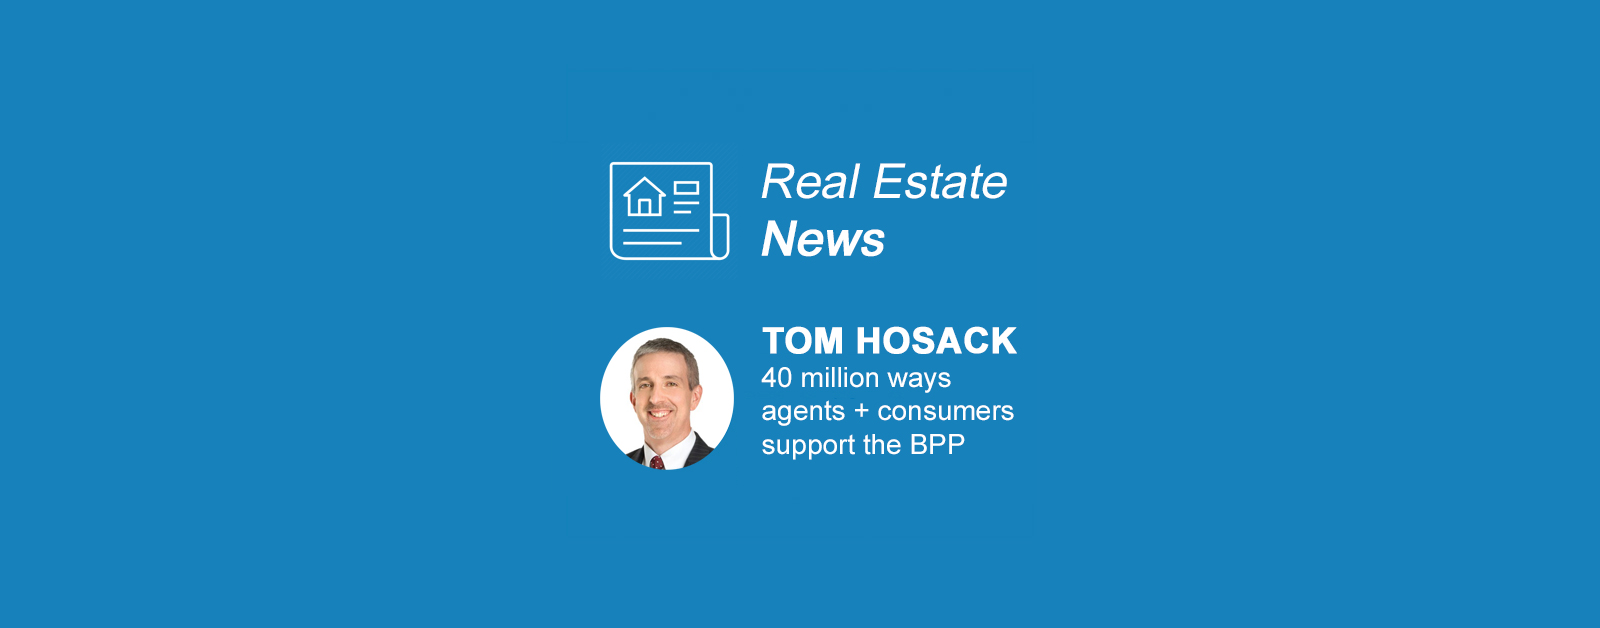 Tom Hosack Blog 40 million ways